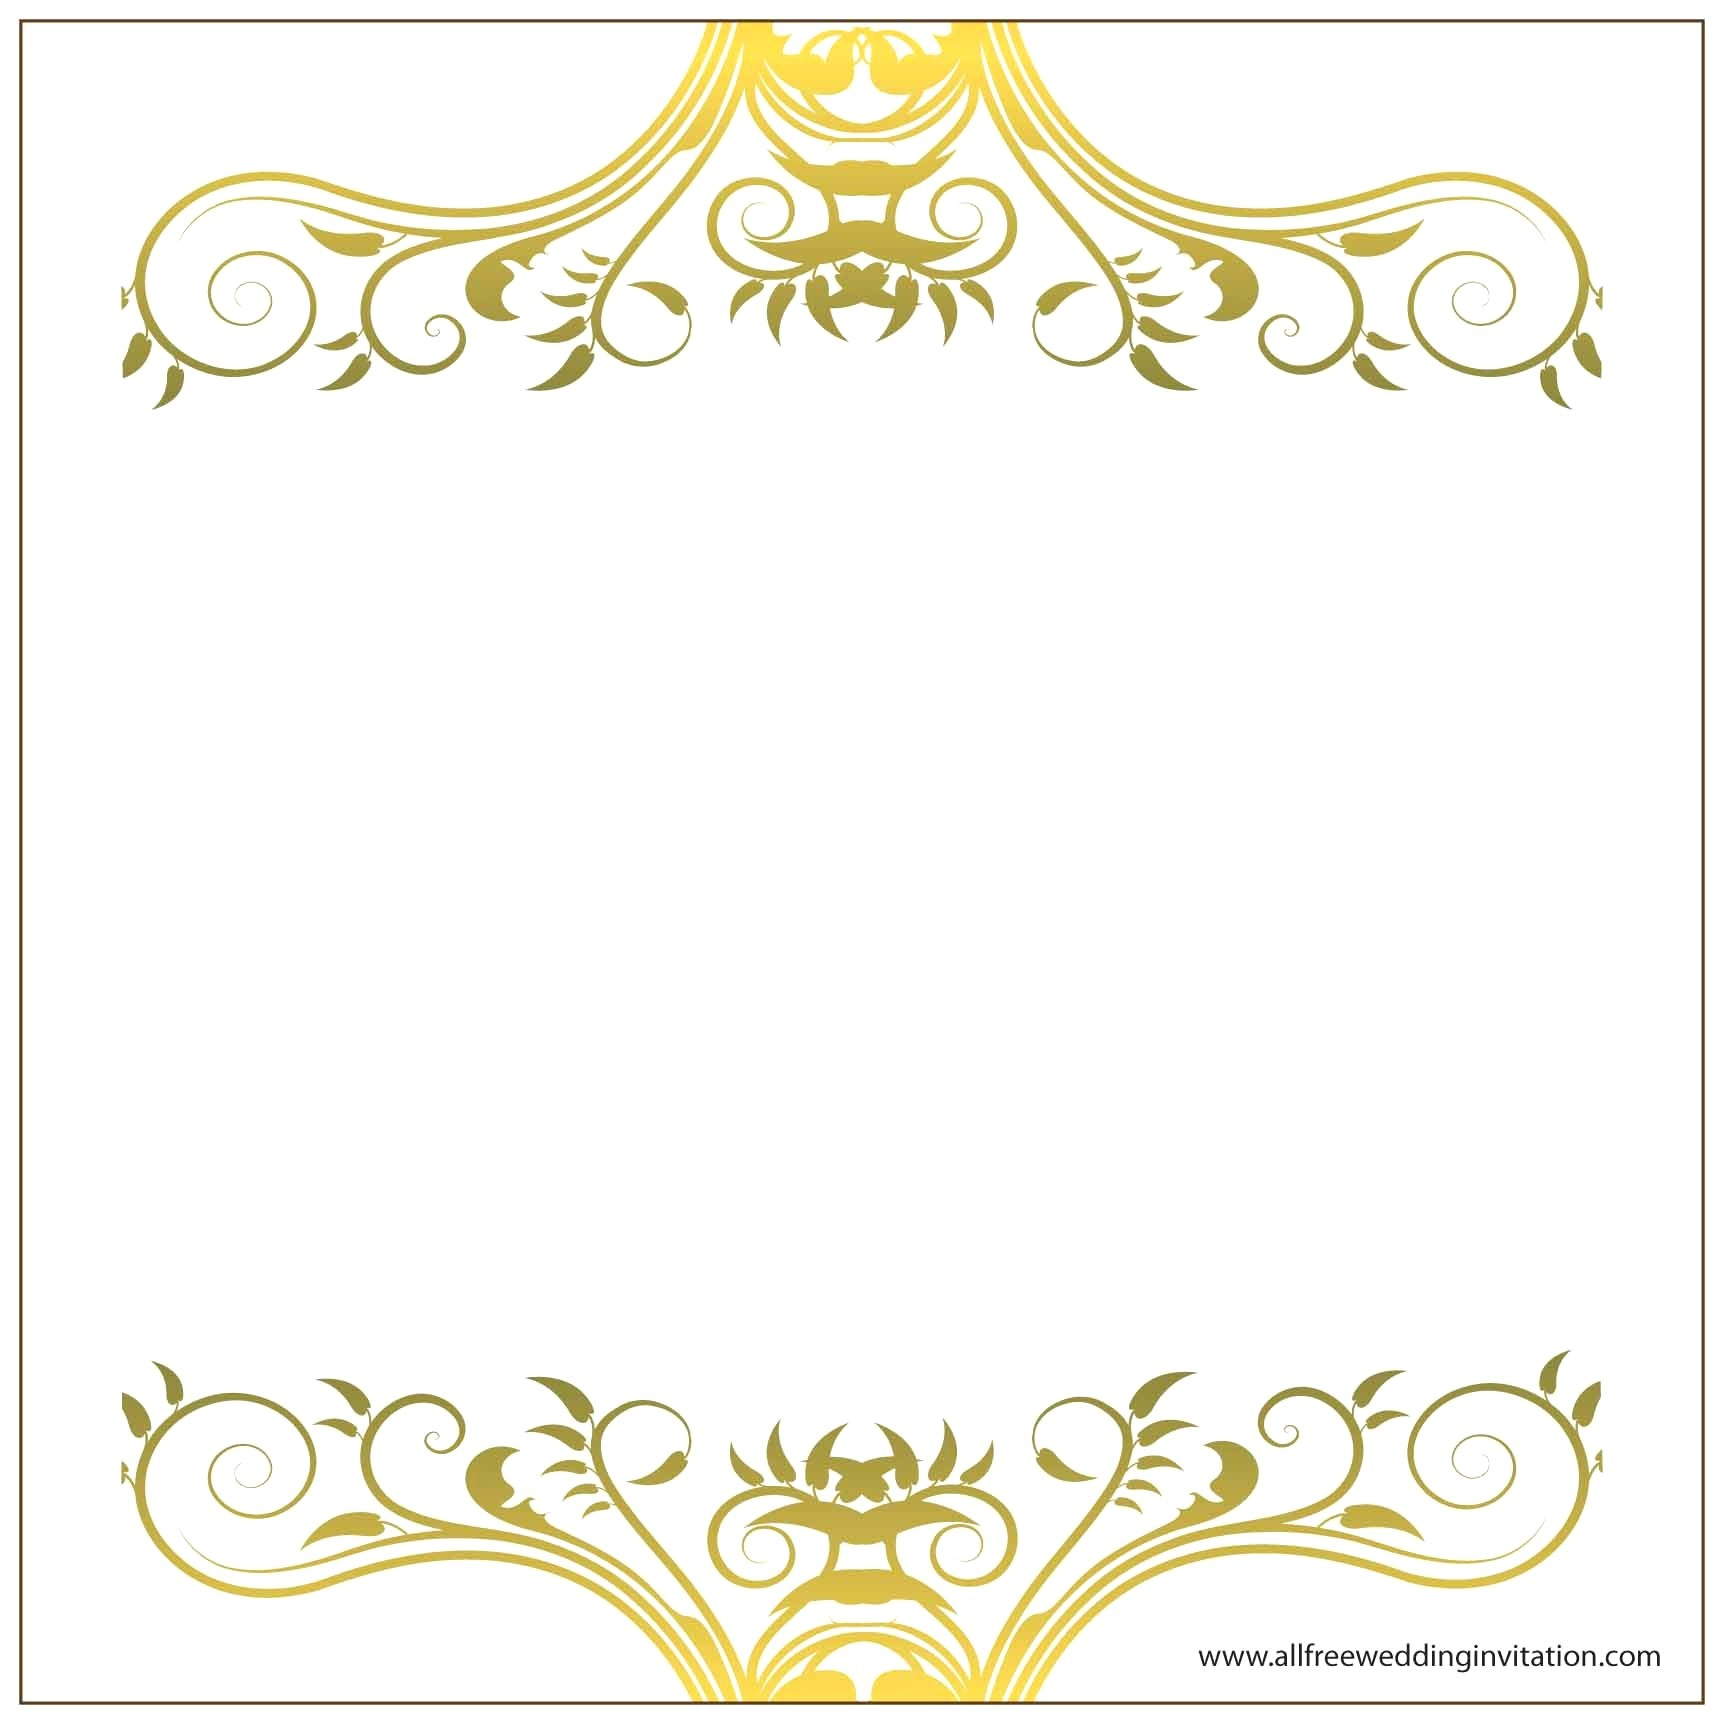 Invitation Border Png (106+ images in Collection) Page 3.